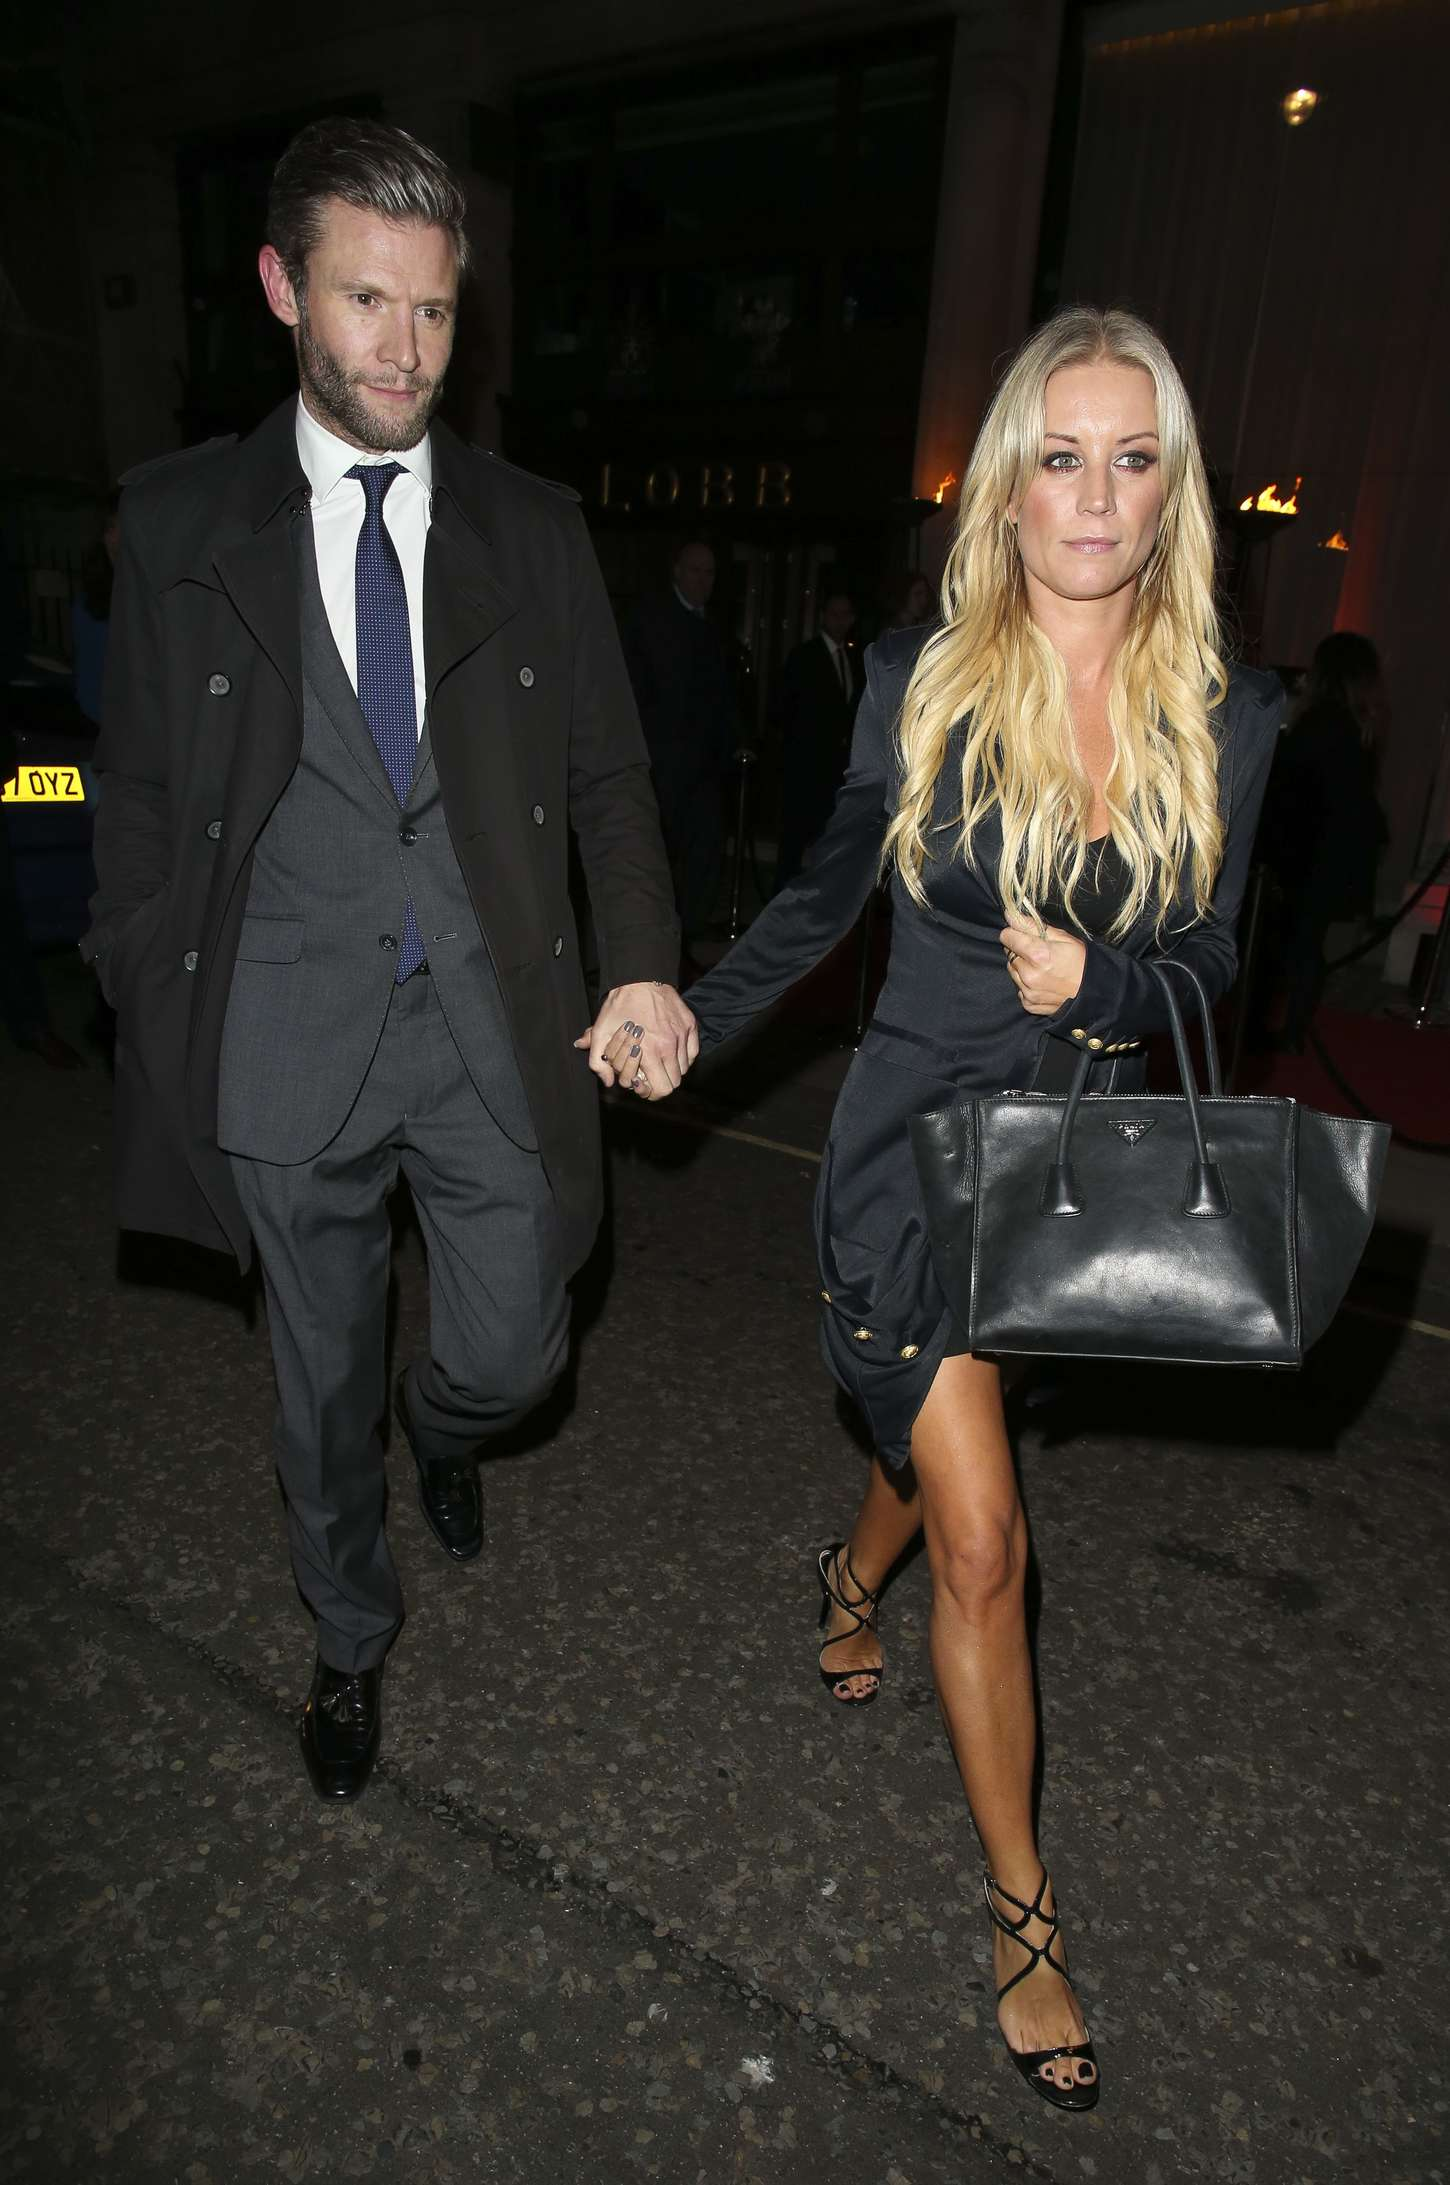 Denise Van Outen Professor Jonathan Shalits OBE Party in London